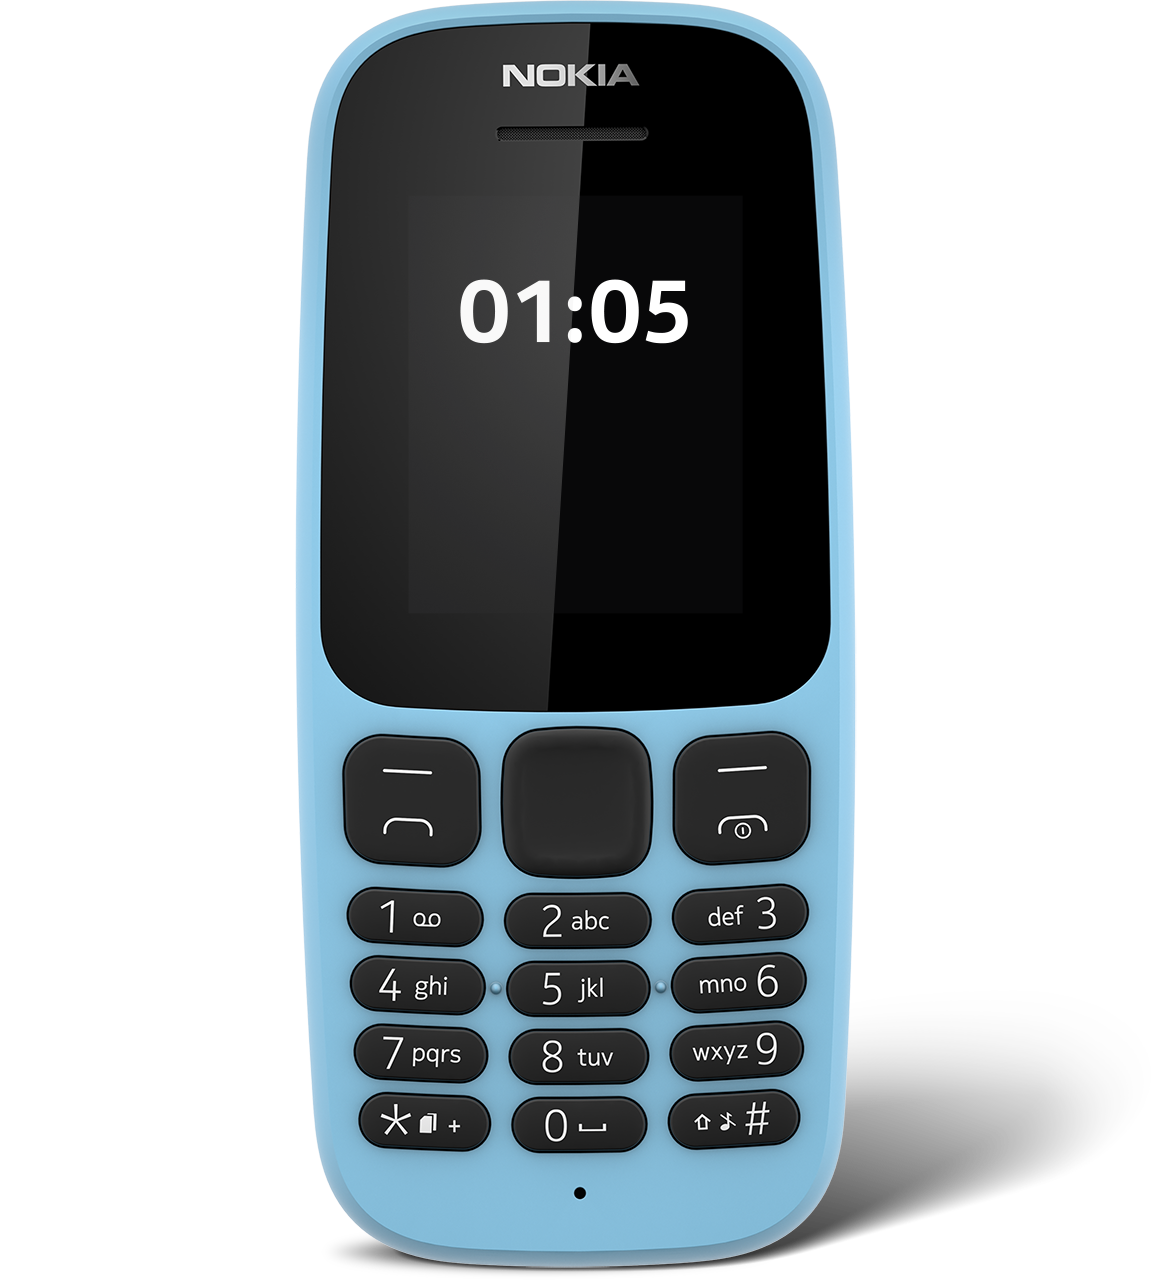 Nokia 105 mobile | Nokia phones | International - English